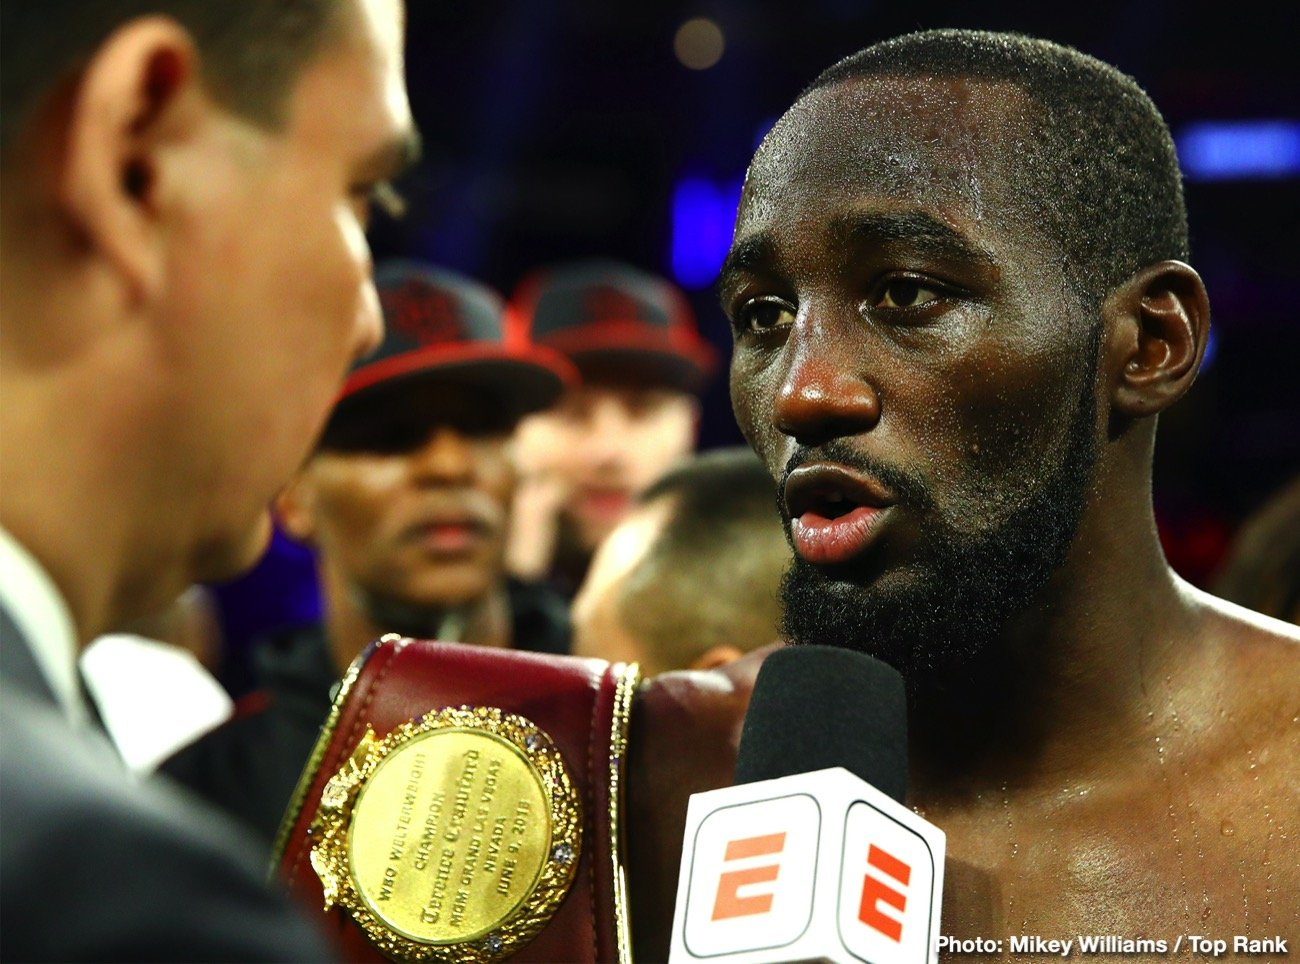 Terence Crawford says Errol Spence's style is suited for Danny Garcia